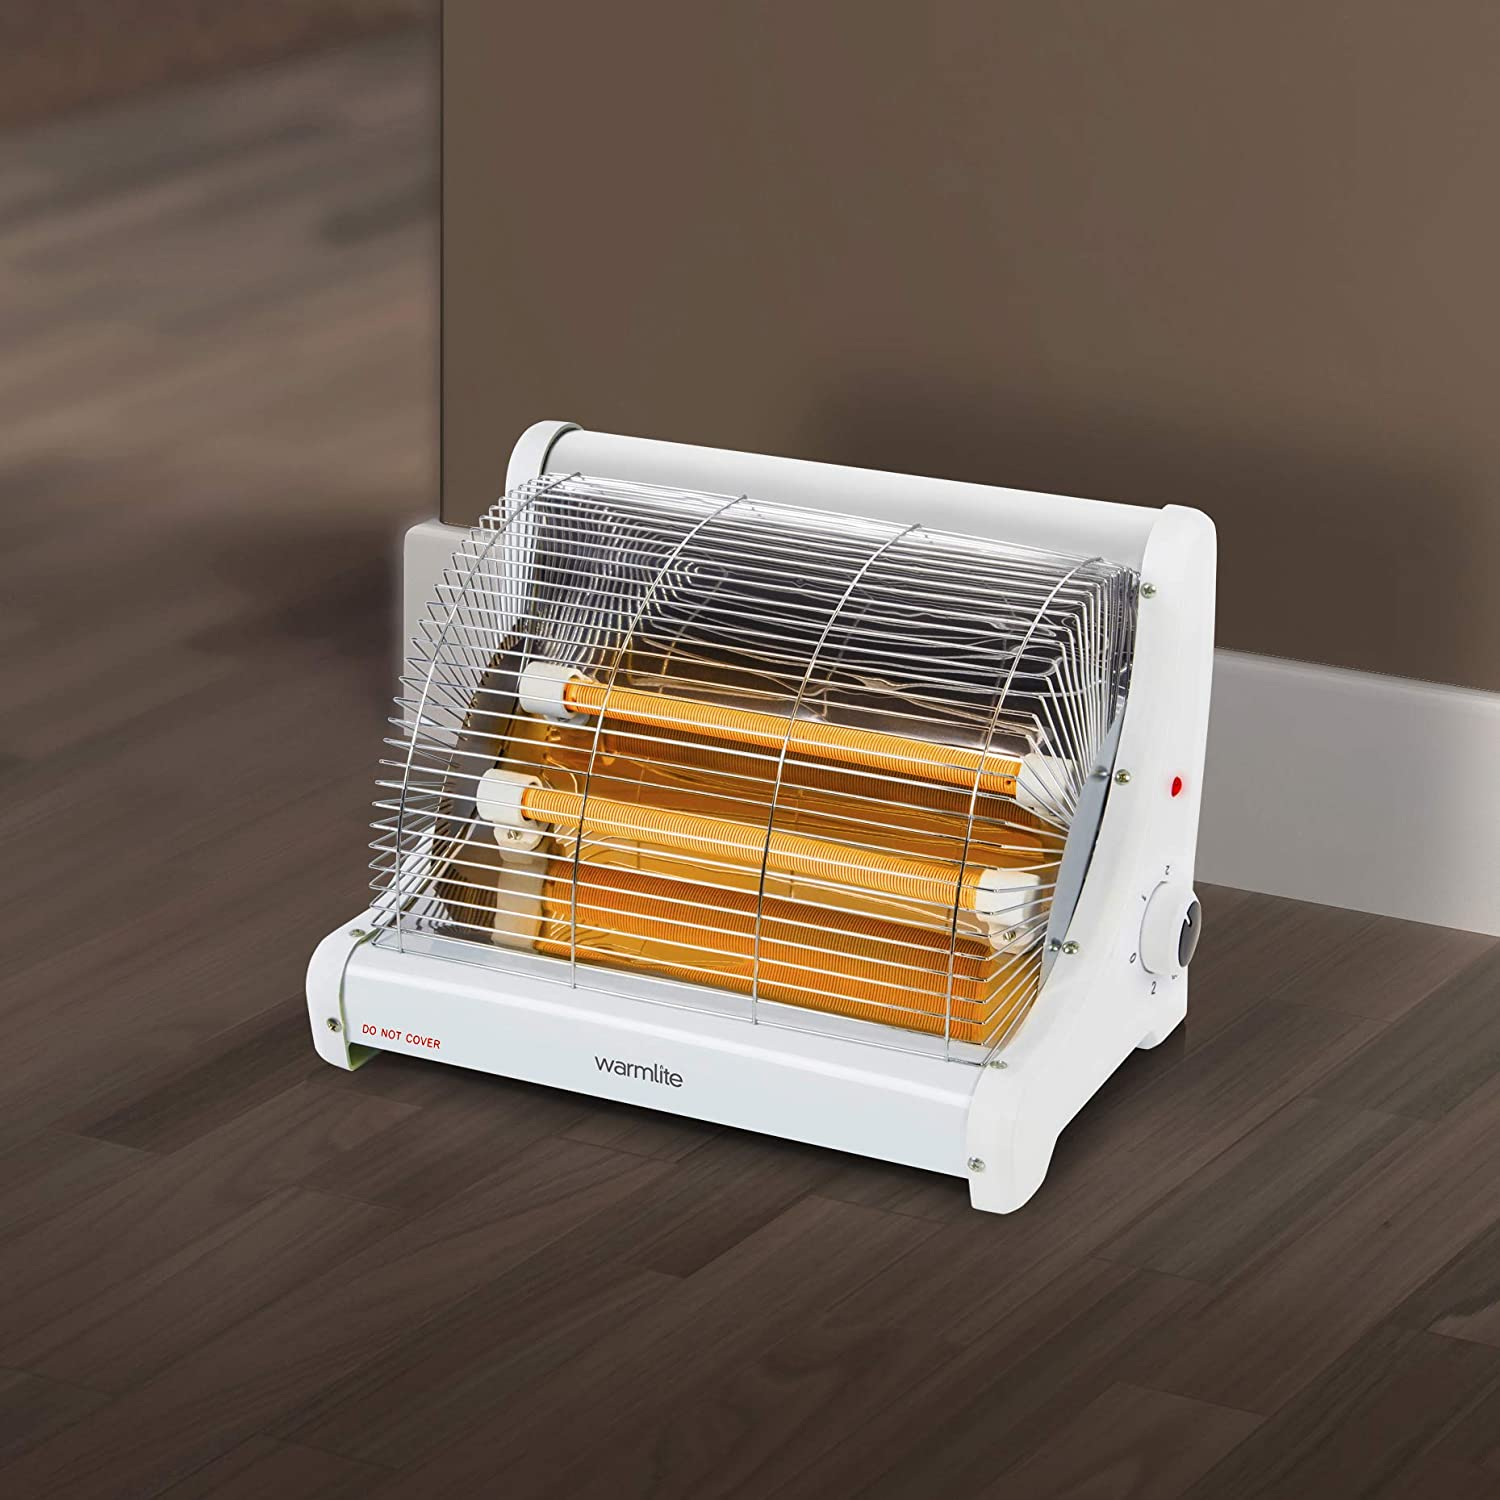 Warmlite Portable Radiant 2 Bar Heater with Ceramic Heating Elements, Adjustable Temperature, Anti tip Over Prevention Safety Feature, Free Standing